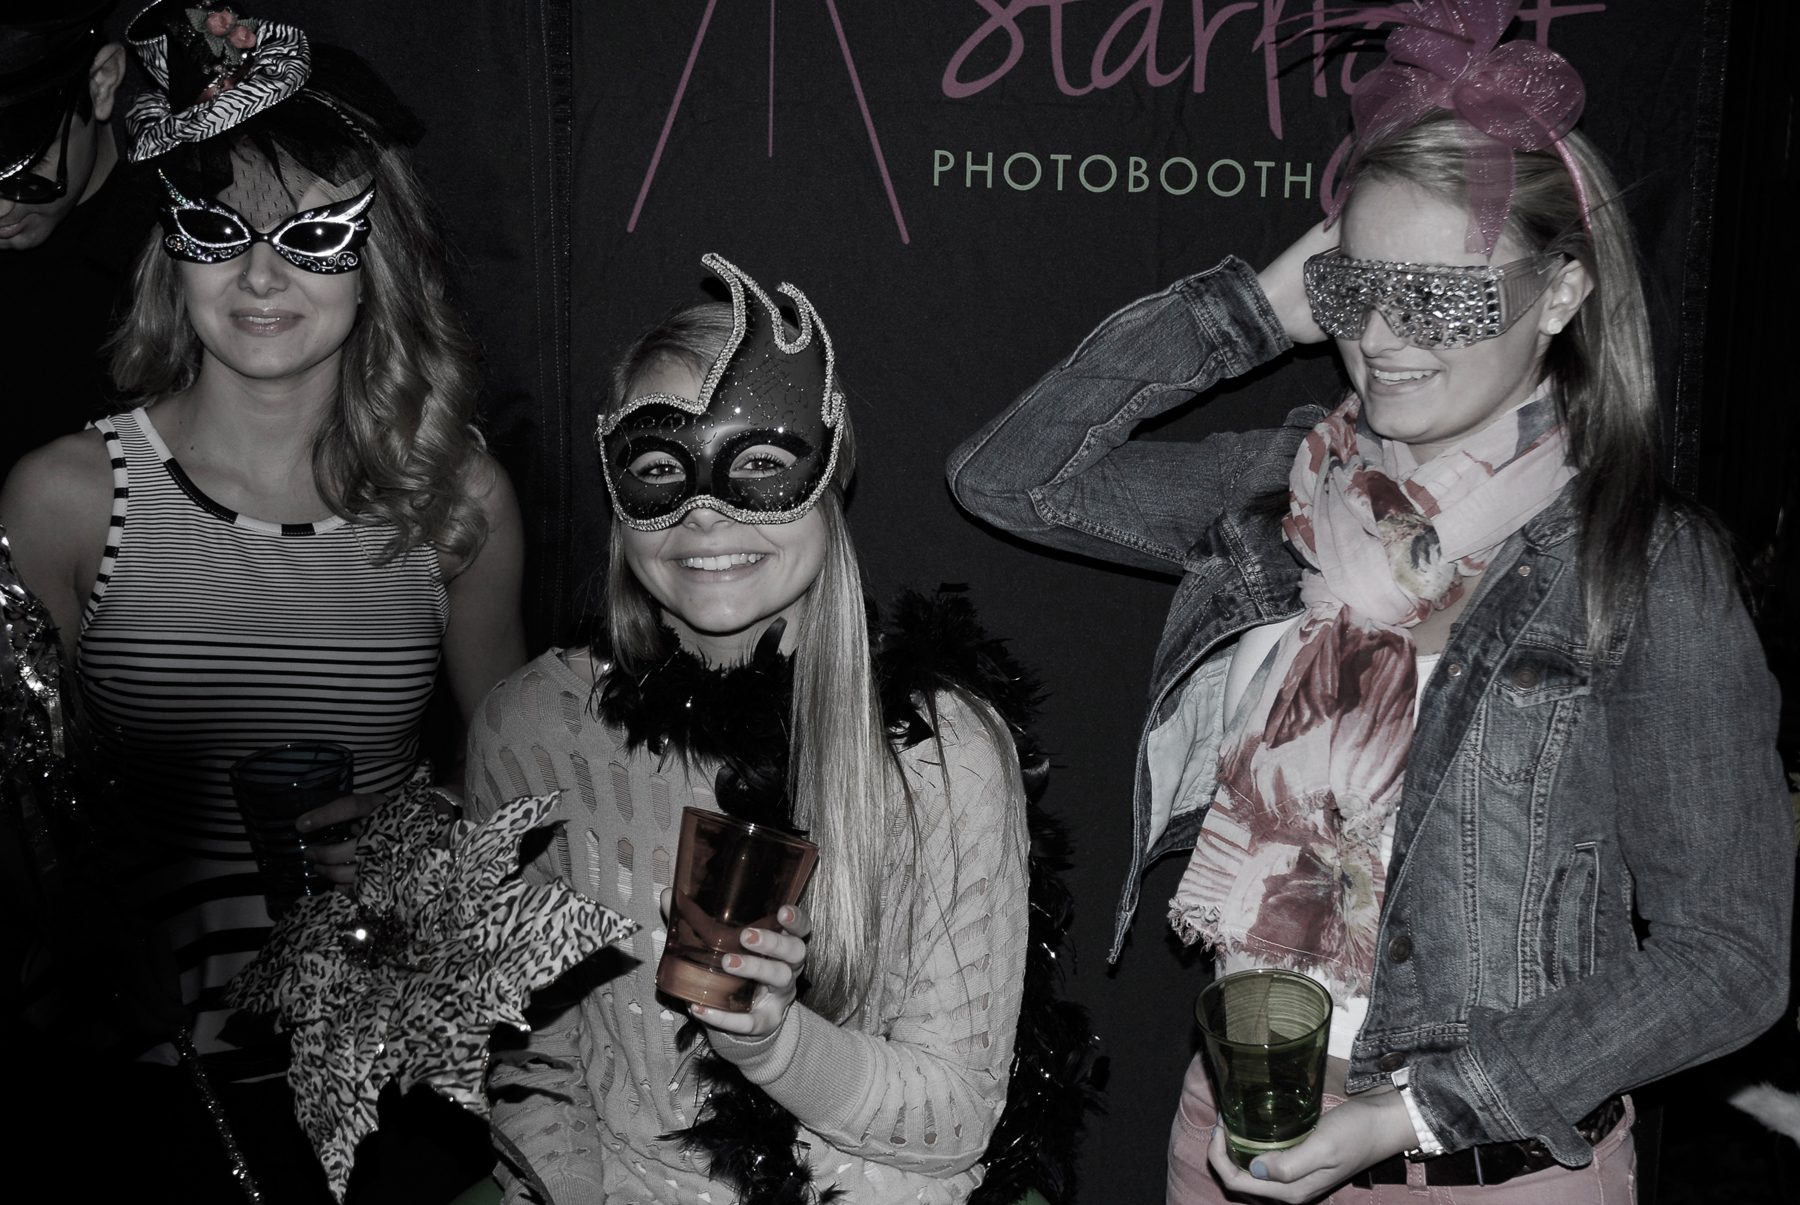 Starlight Photo Booth in Erie, PA with custom and handmade props